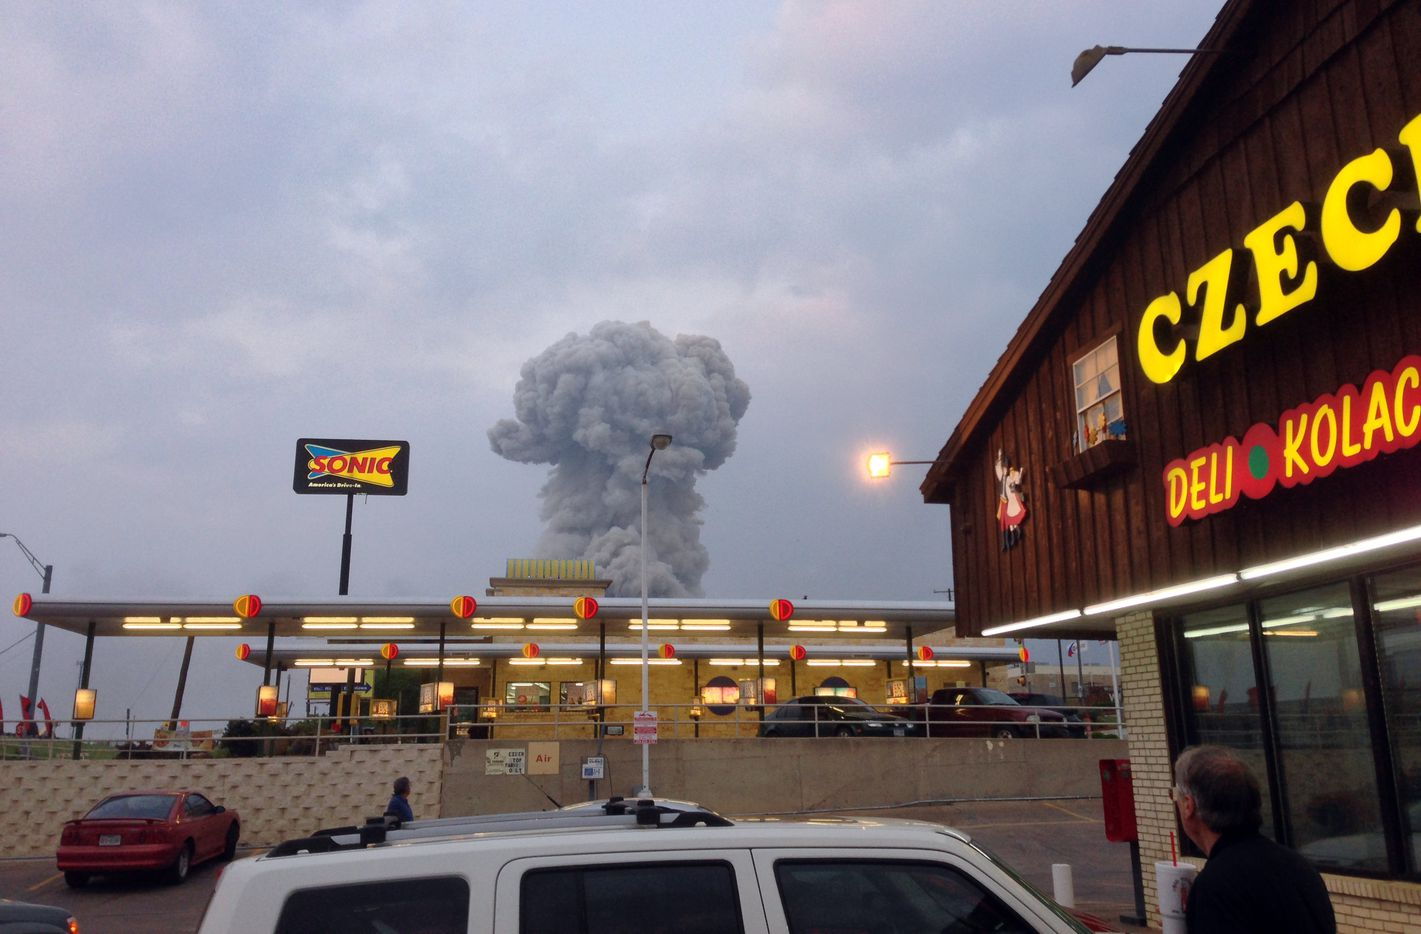 People at the Czech Stop look at a cloud of smoke rising from an explosion at a fertilizer plant in West, Texas Wednesday April 17, 2013. (Andy Bartee/Special to The Dallas Morning News) 04182013xNEWS 04282013xNEWS 08082014xNEWS